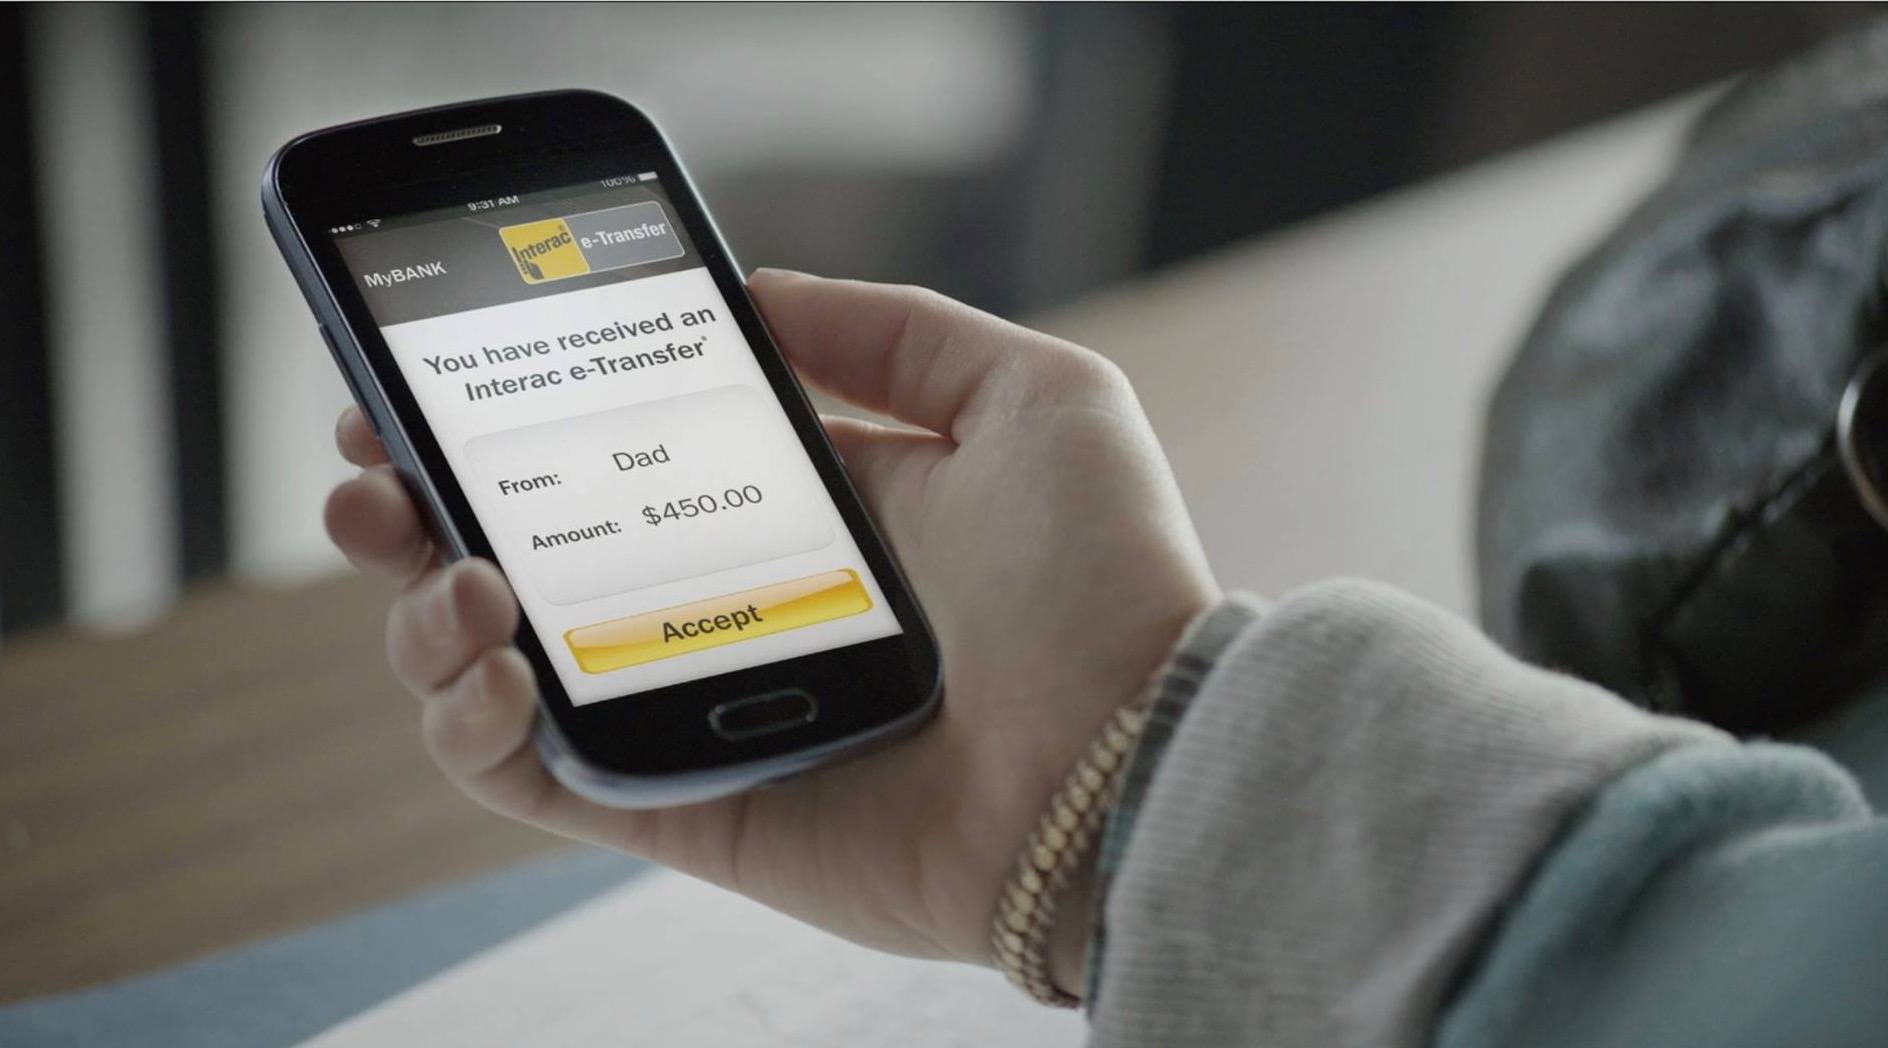 Interac's e-Transfer service is down Canada-wide right now